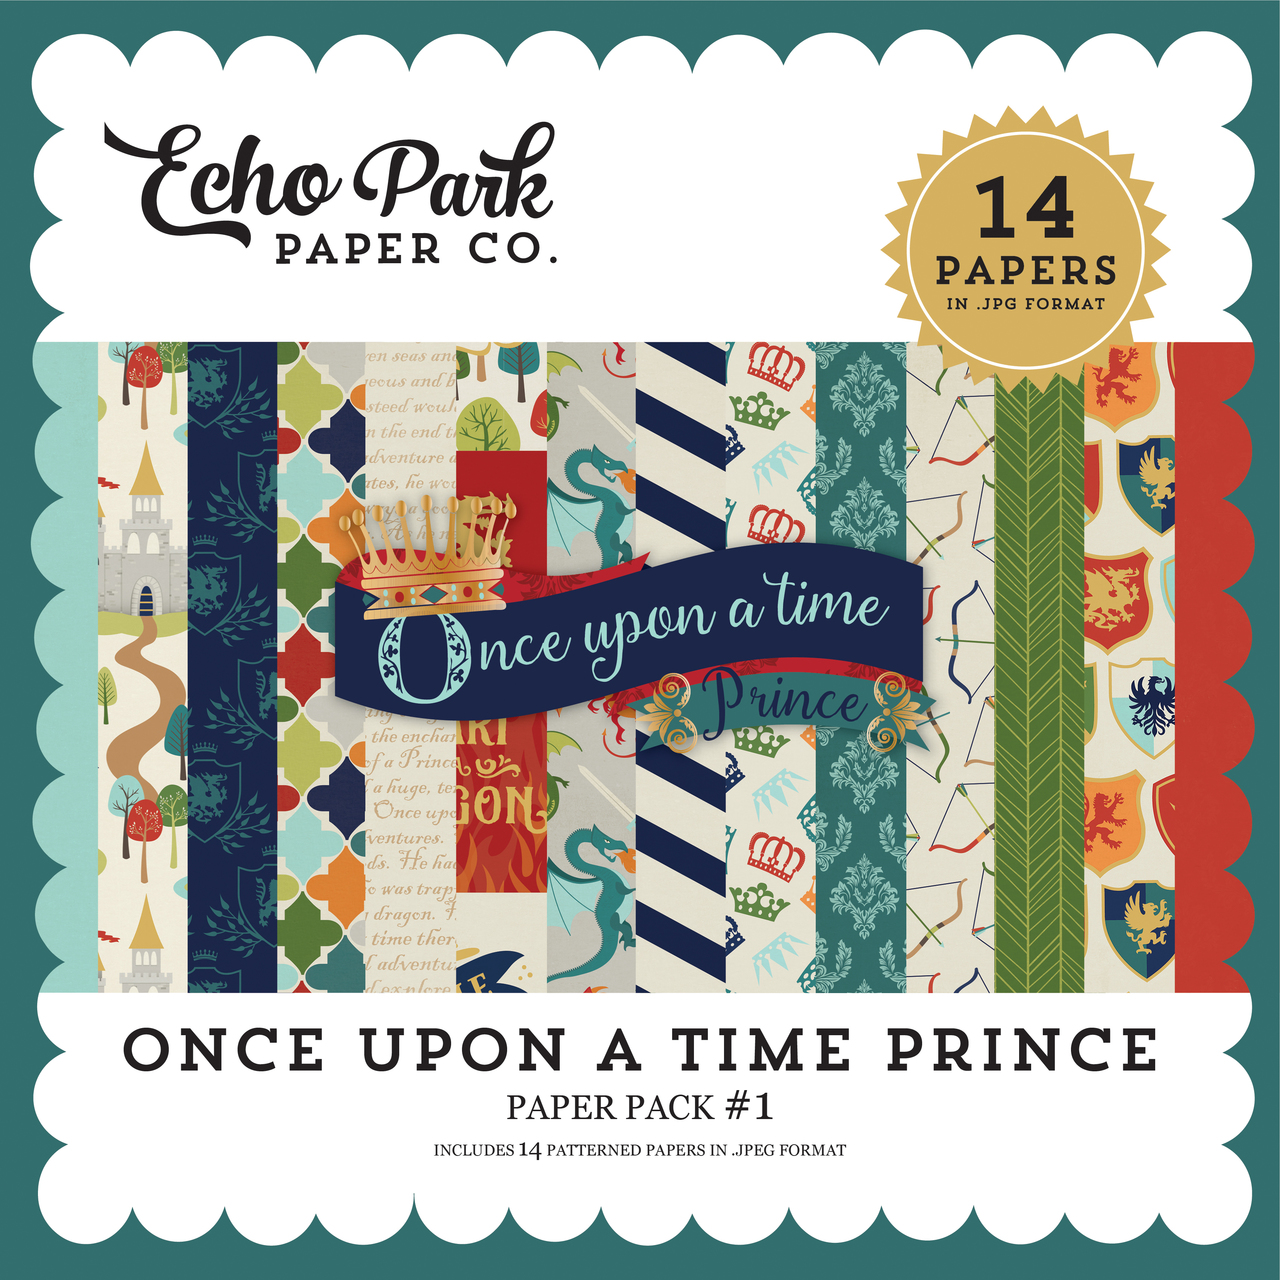 Once Upon a Time Prince Paper Pack #1